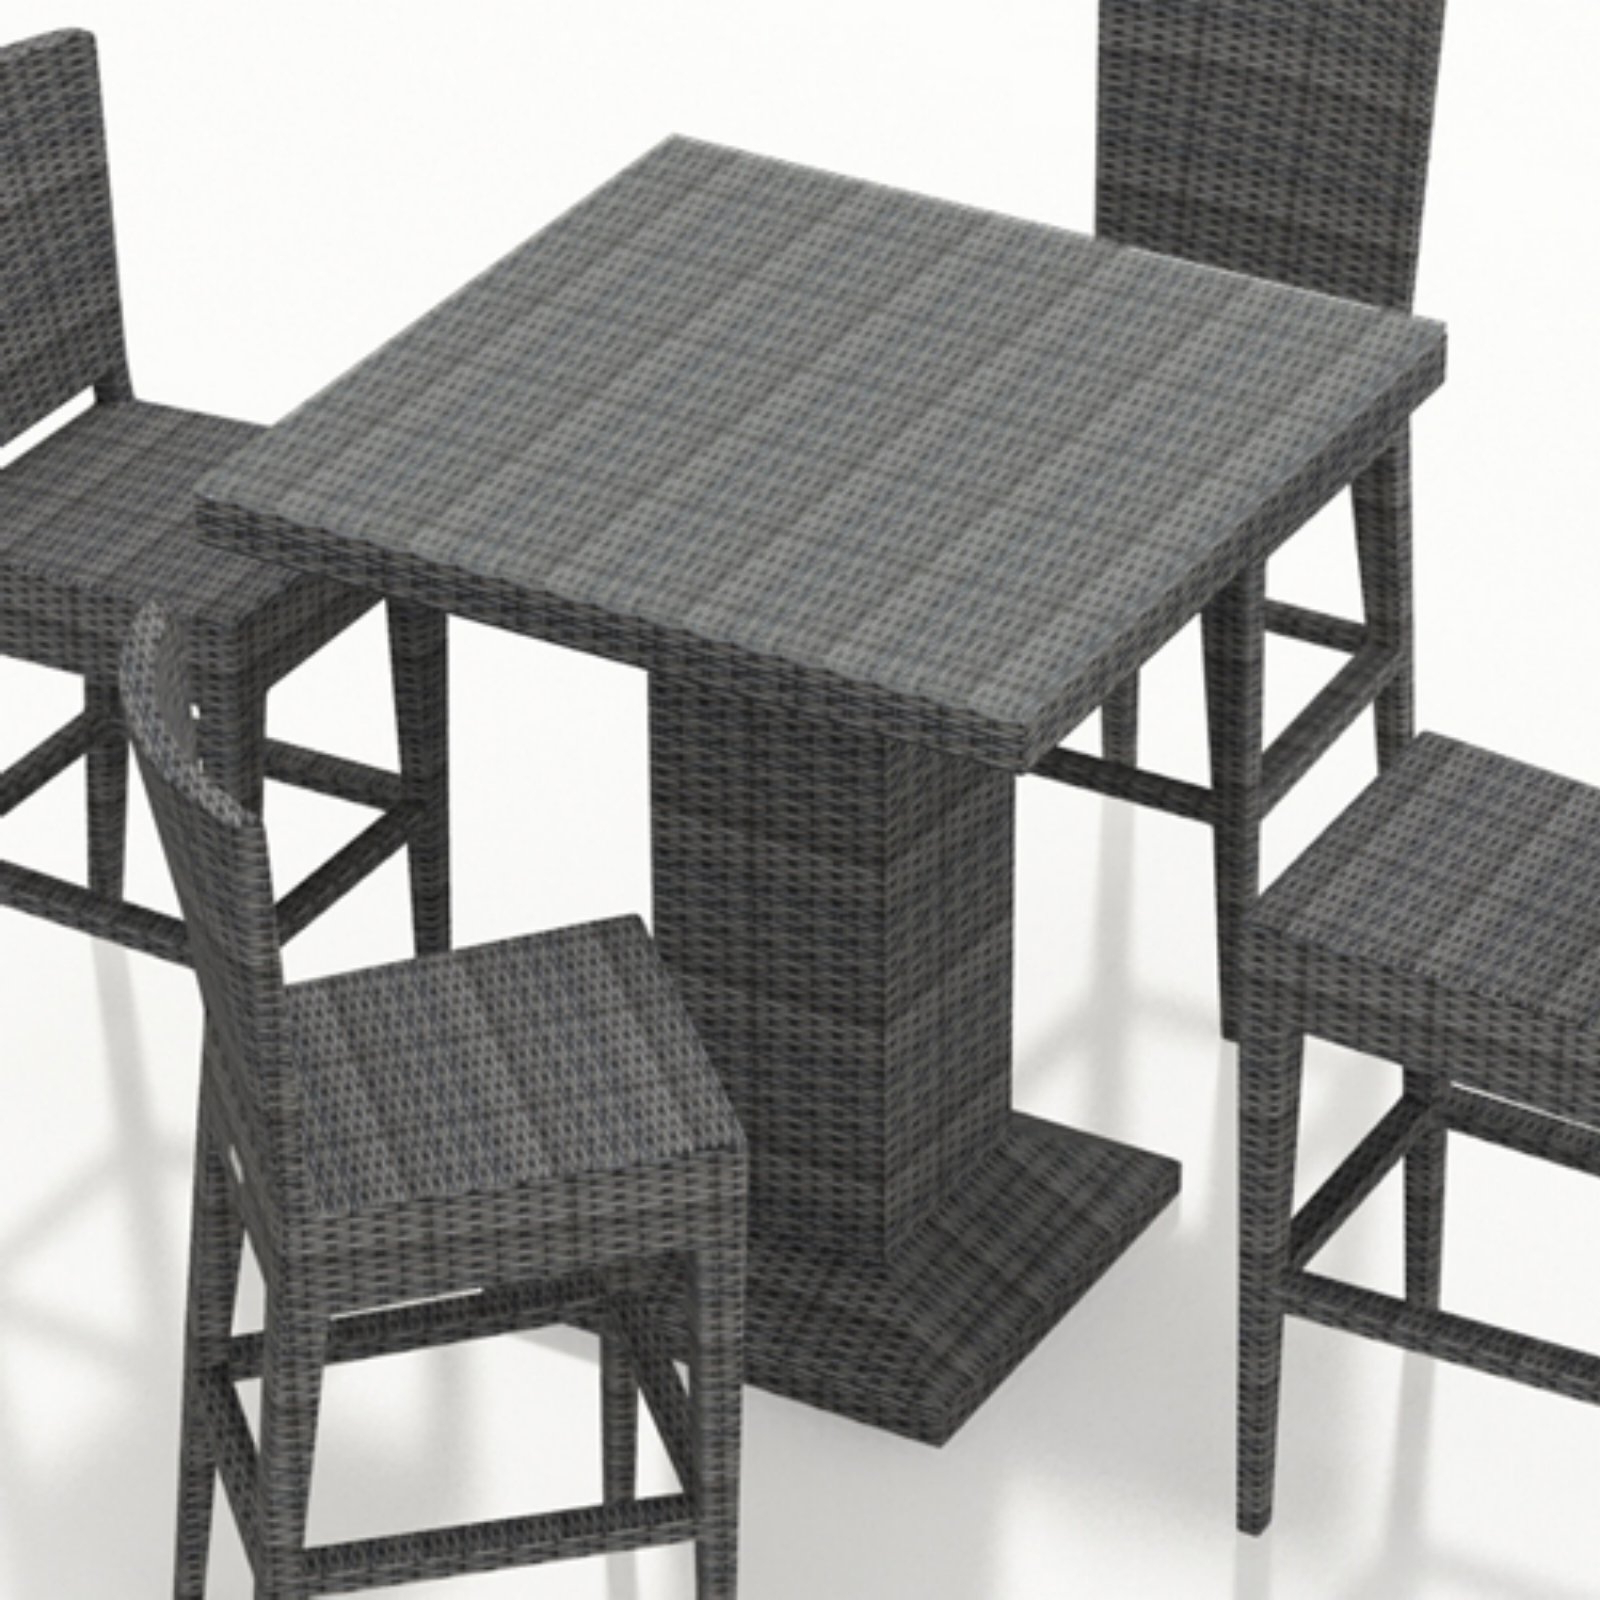 Most Recently Released Outdoor Harmonia Living District Resin Wicker Square Bar Within Patio Square Bar Dining Tables (View 22 of 30)